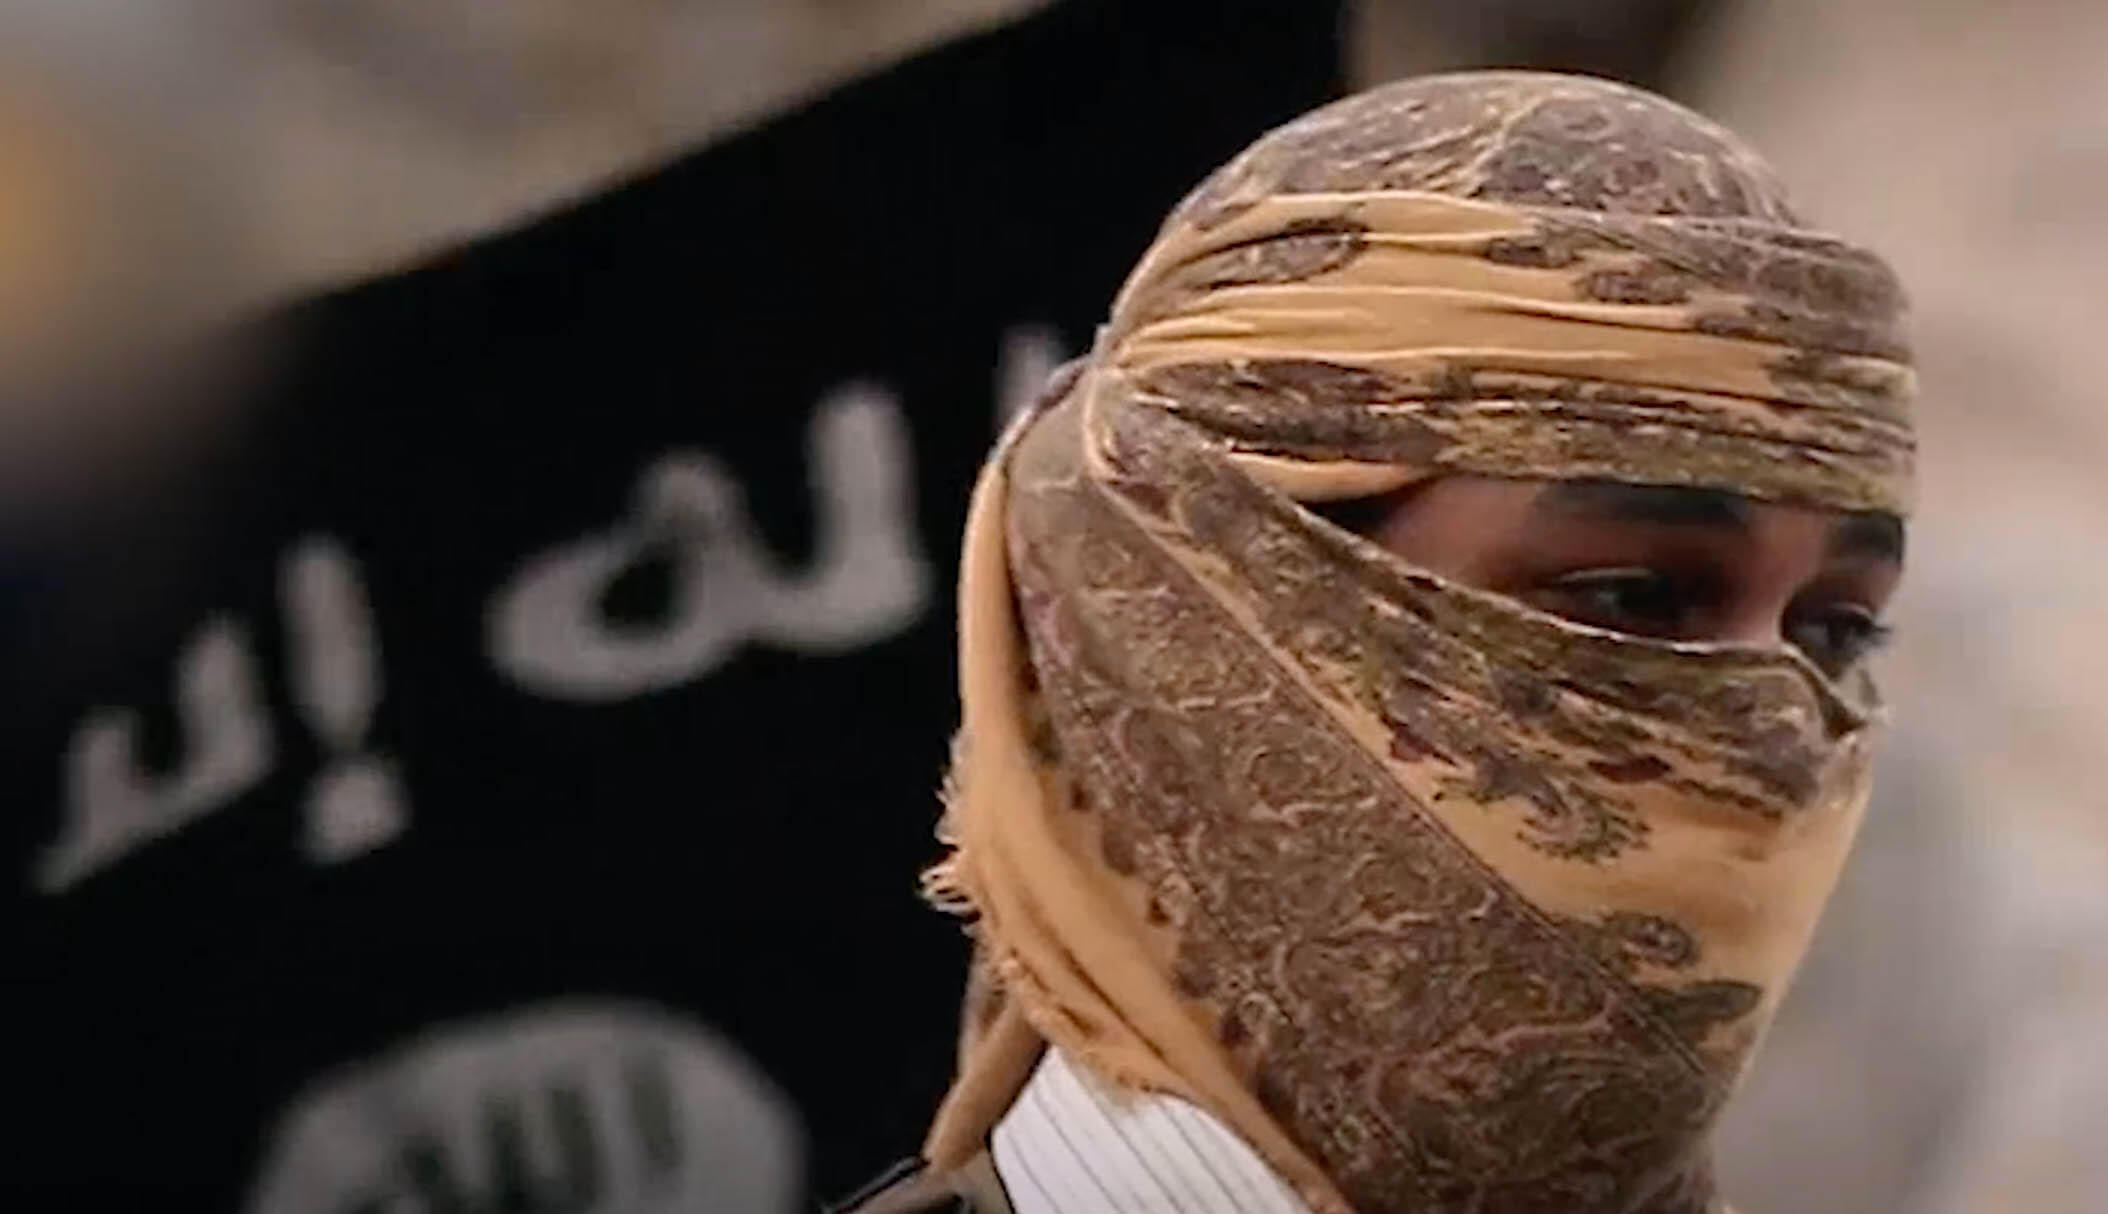 Surviving In The Islamic State Caliphate